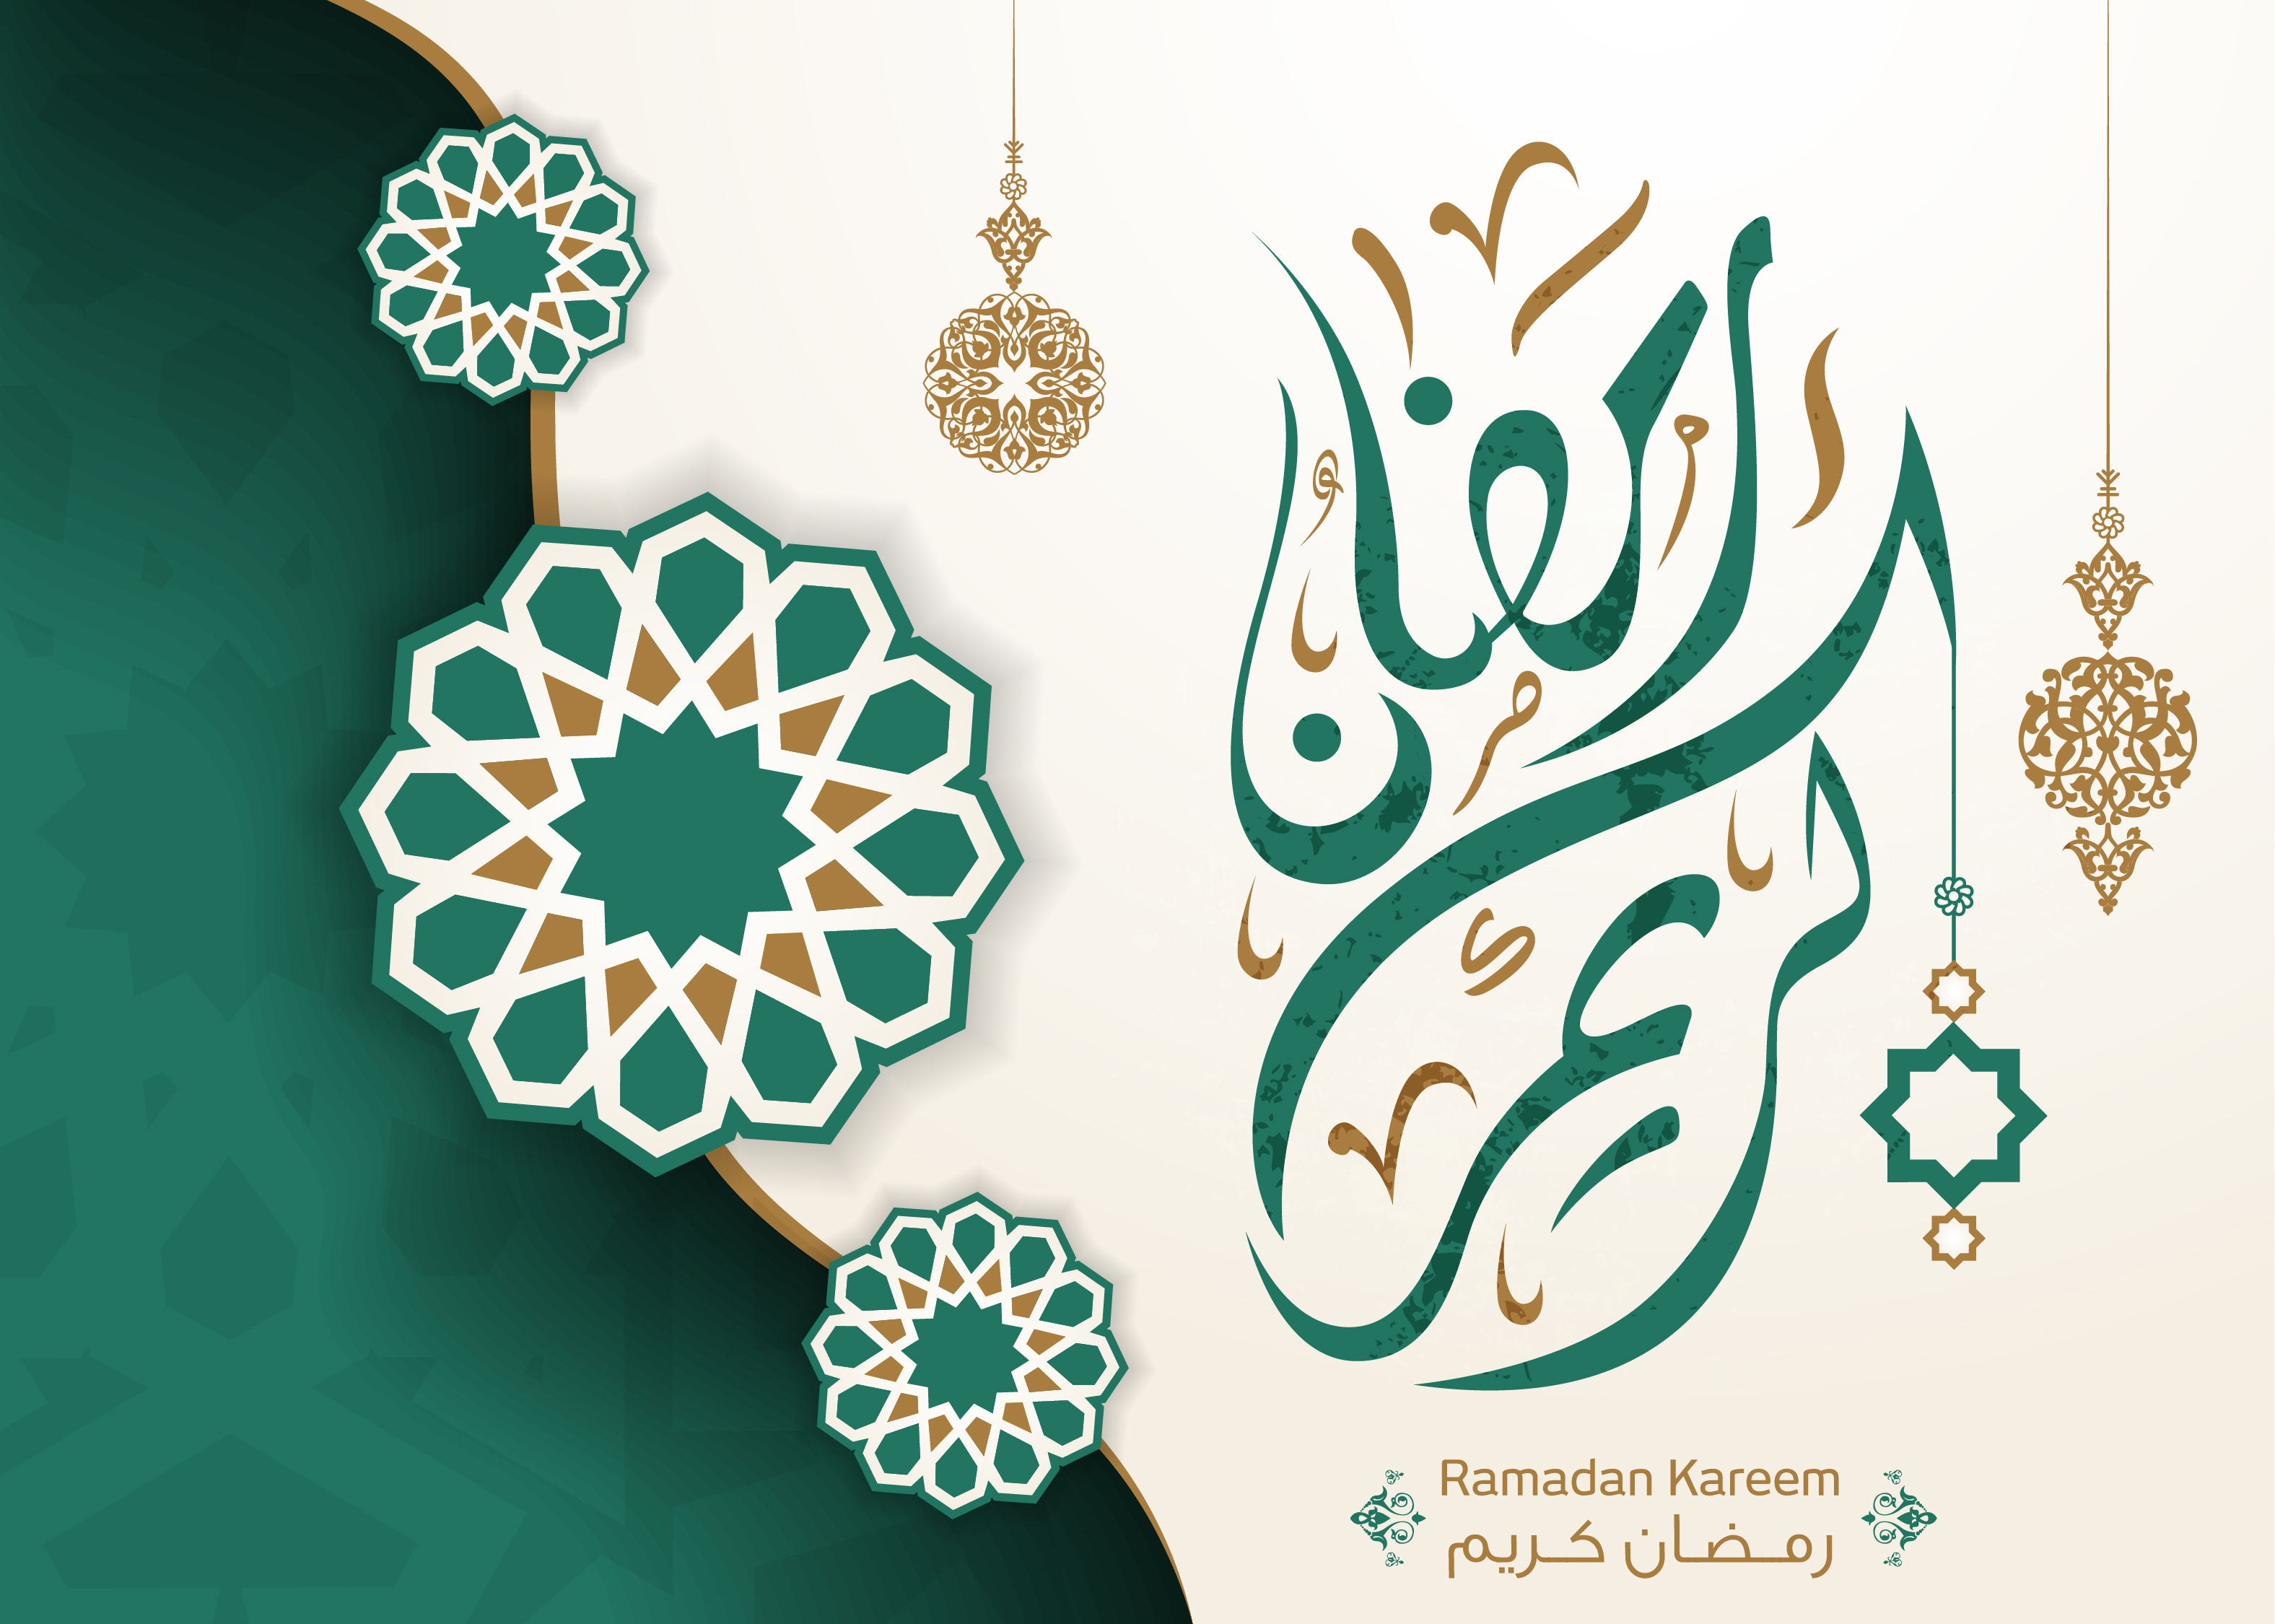 Ramadan Kareem Greeting vector in arabic calligraphy with Islamic decoration for Ramadan wishing and design